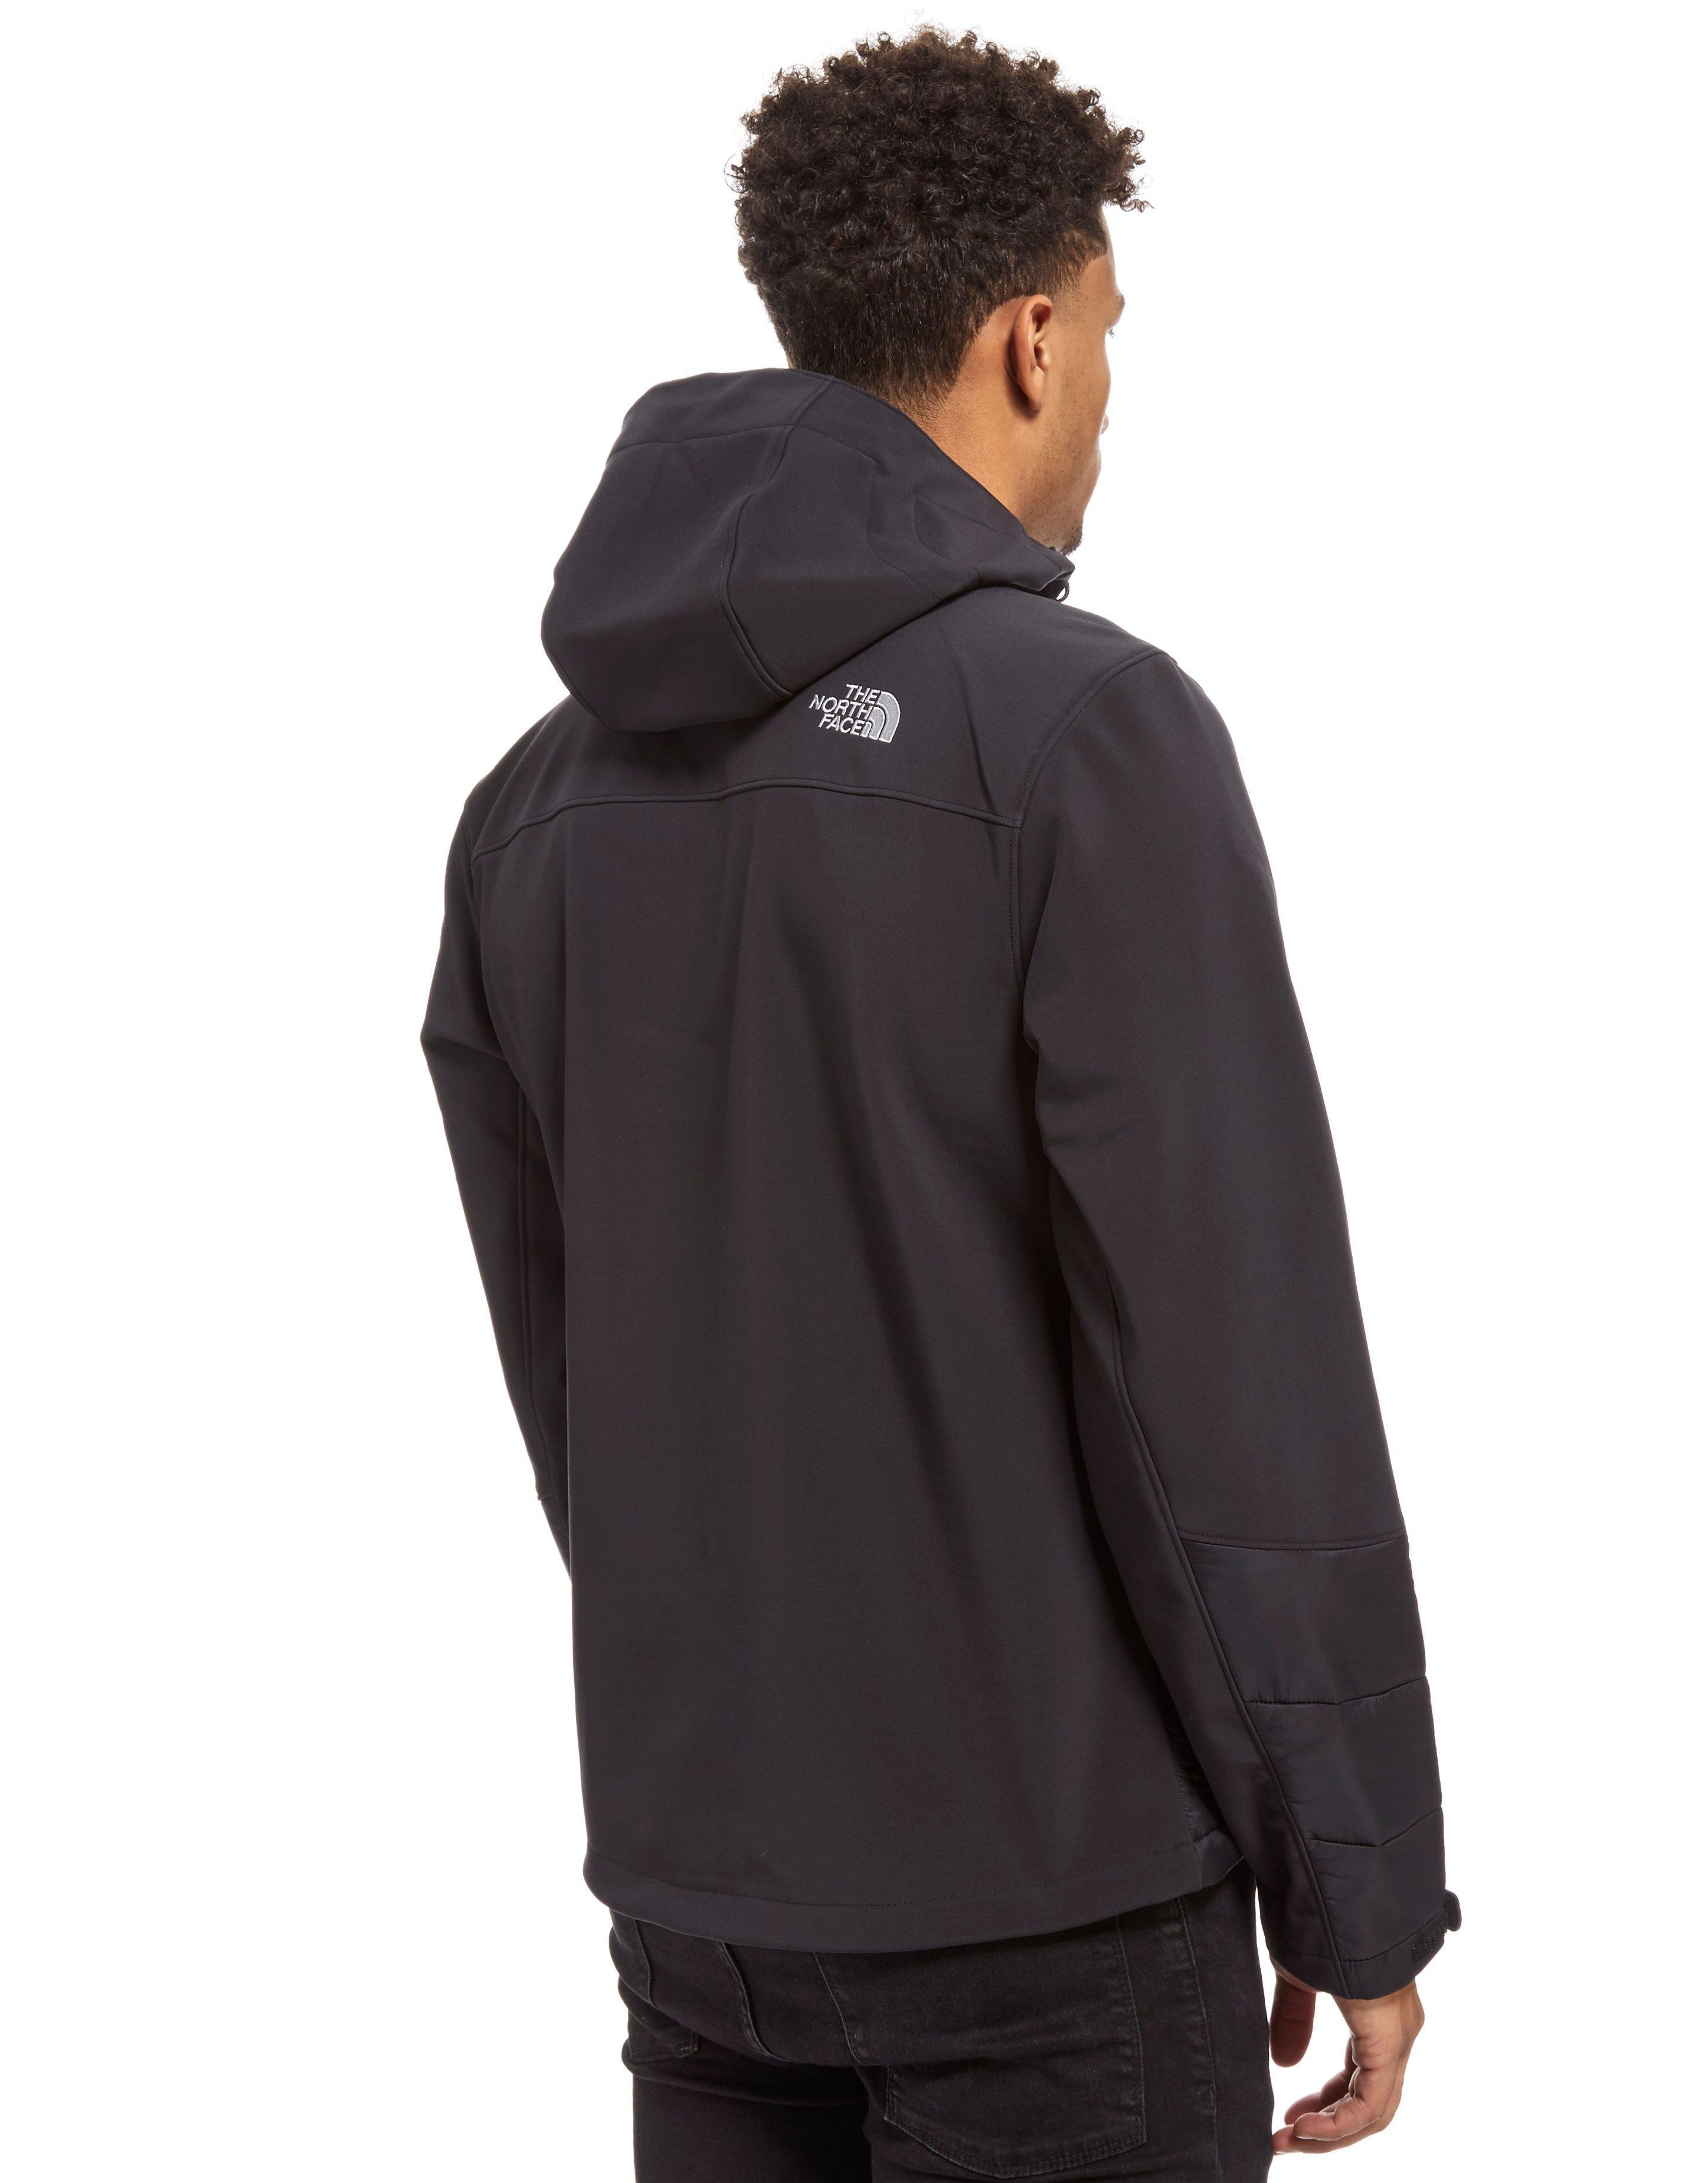 ... purchase lyst the north face tompkins hybrid jacket in black for men  b6f87 6cf40 ... ffc5348a6